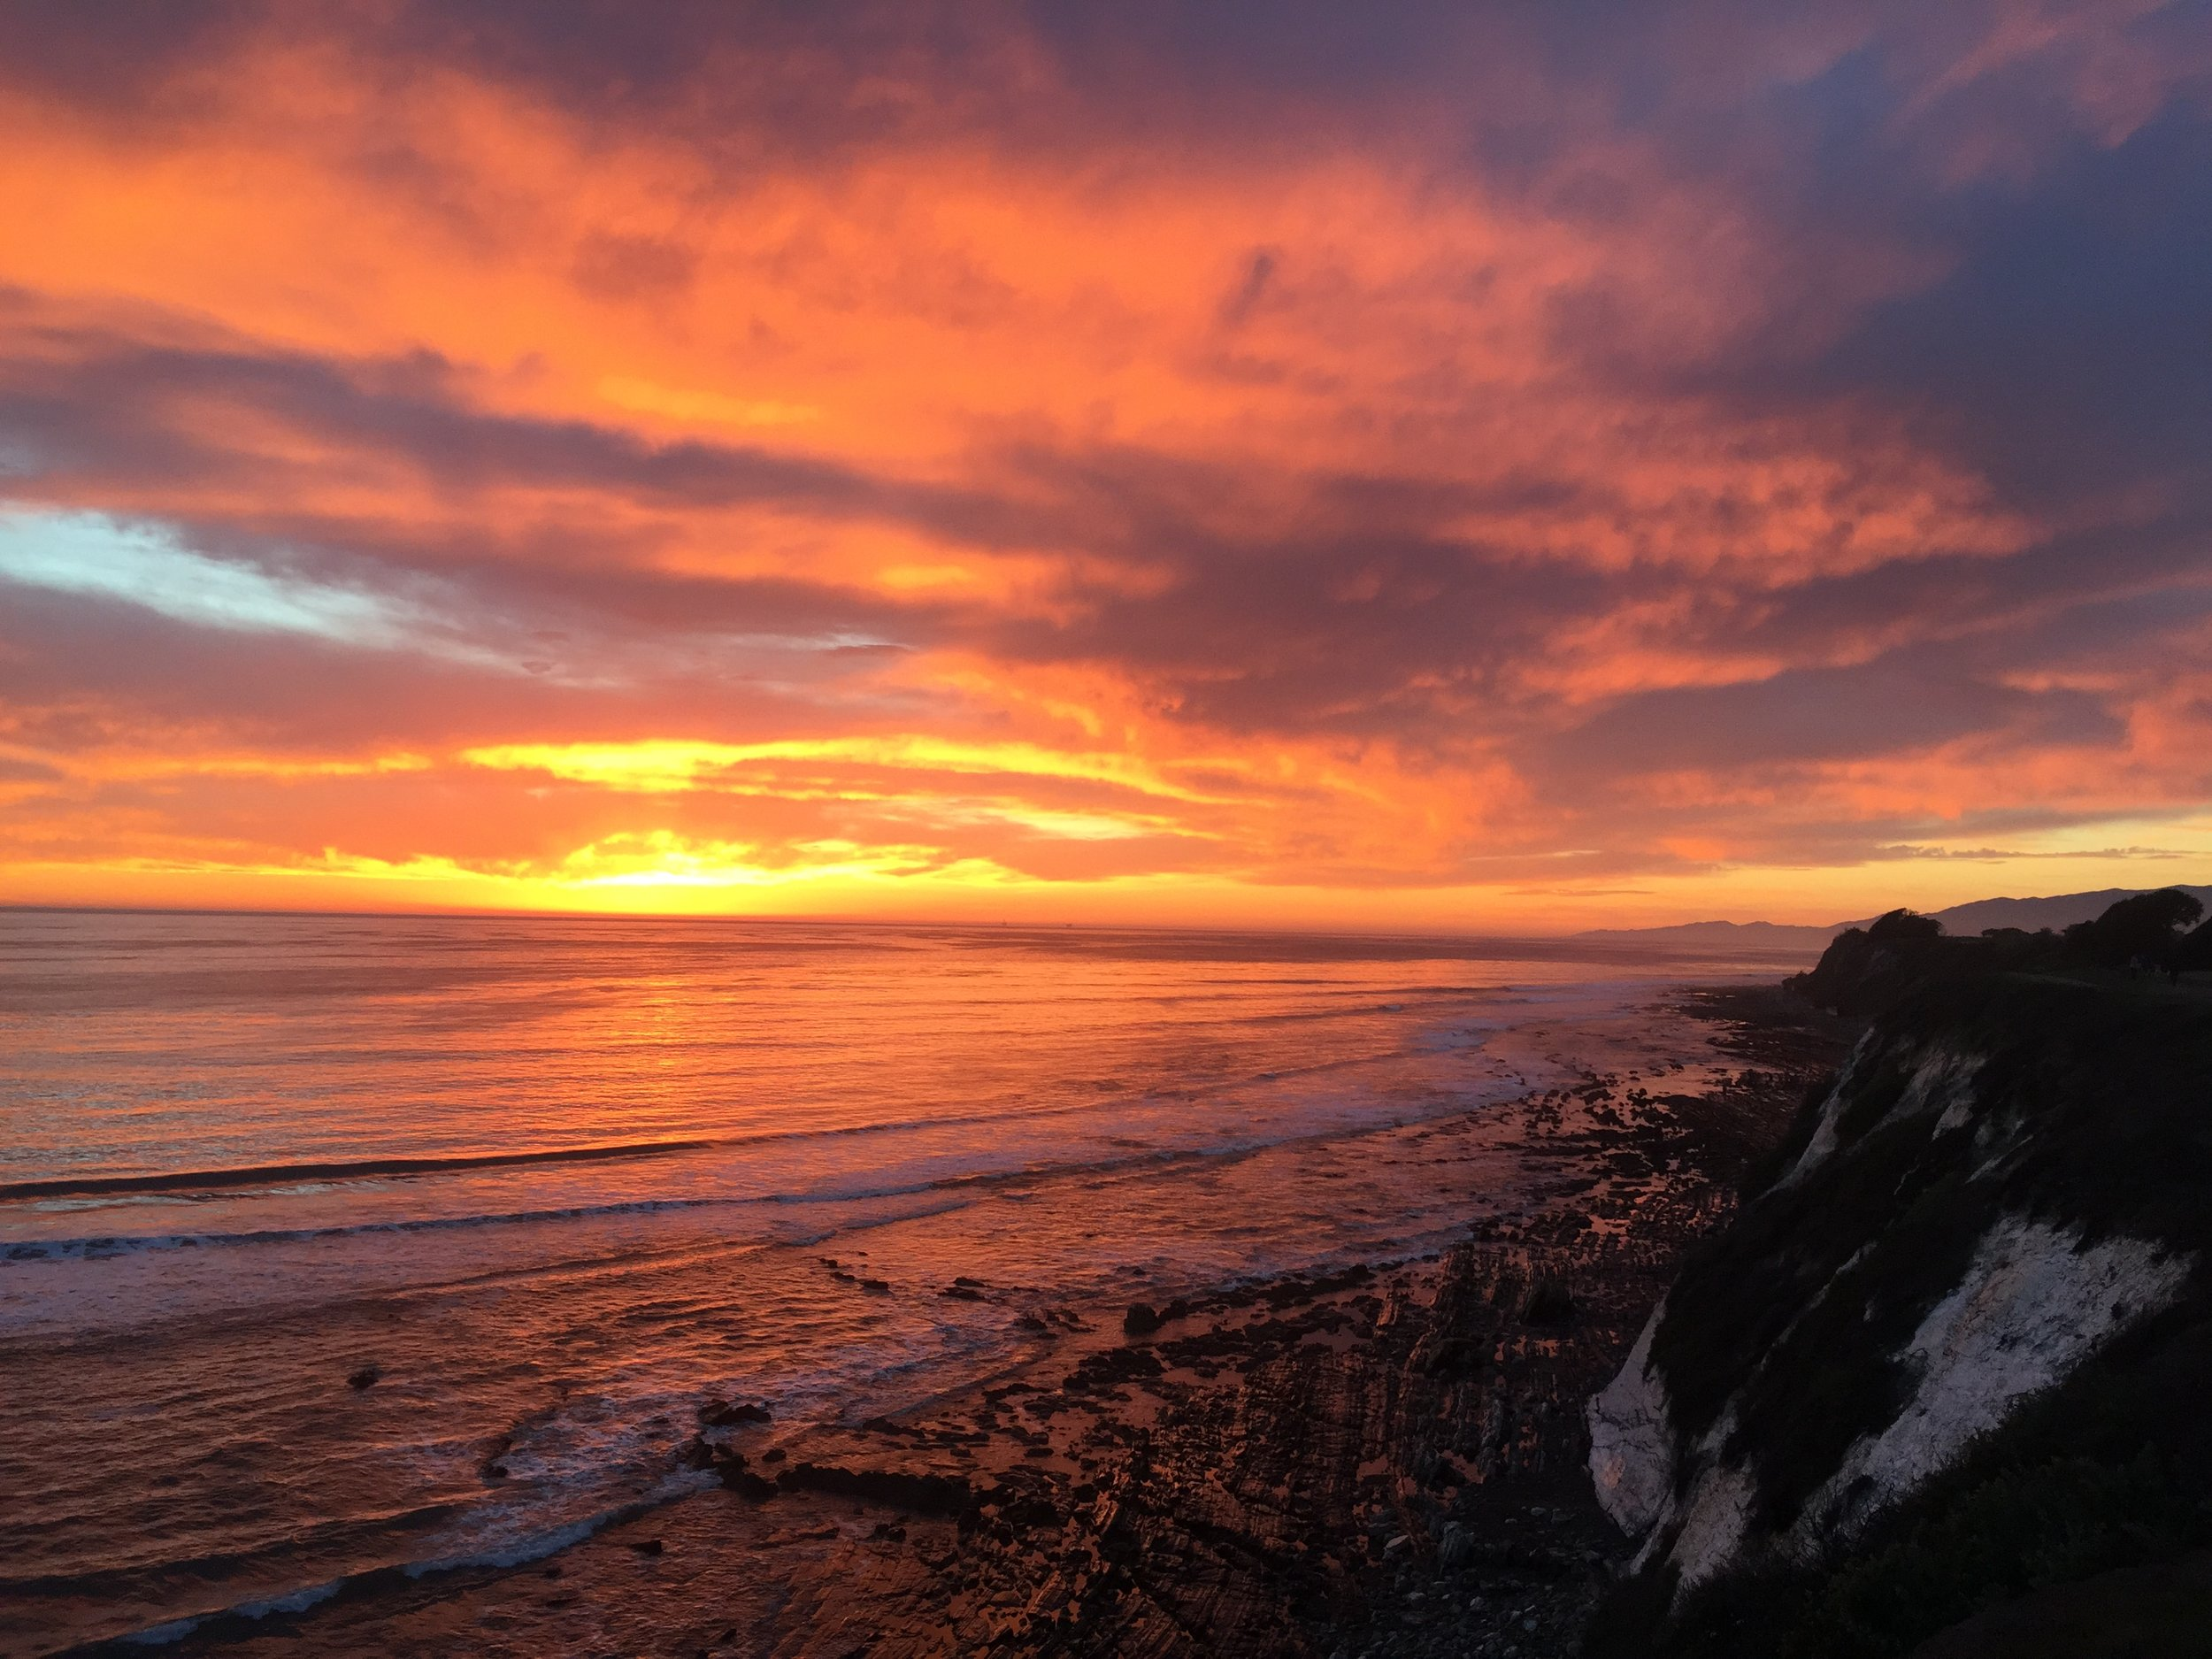 Sunset from the Ellwood cliffs in Goleta (no filter)